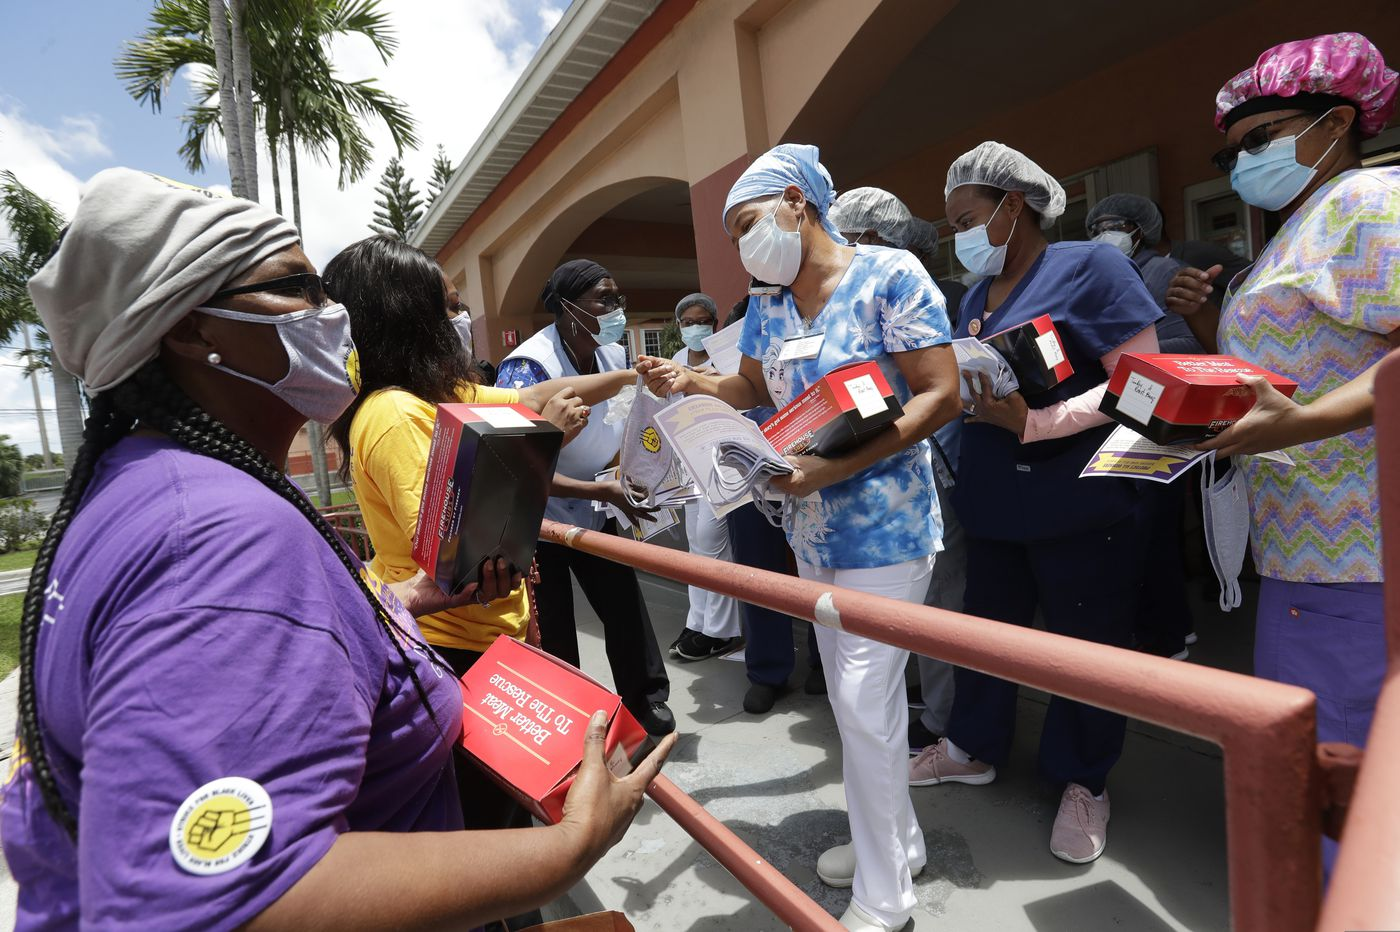 The pandemic has shown just how much workers need unions | Opinion